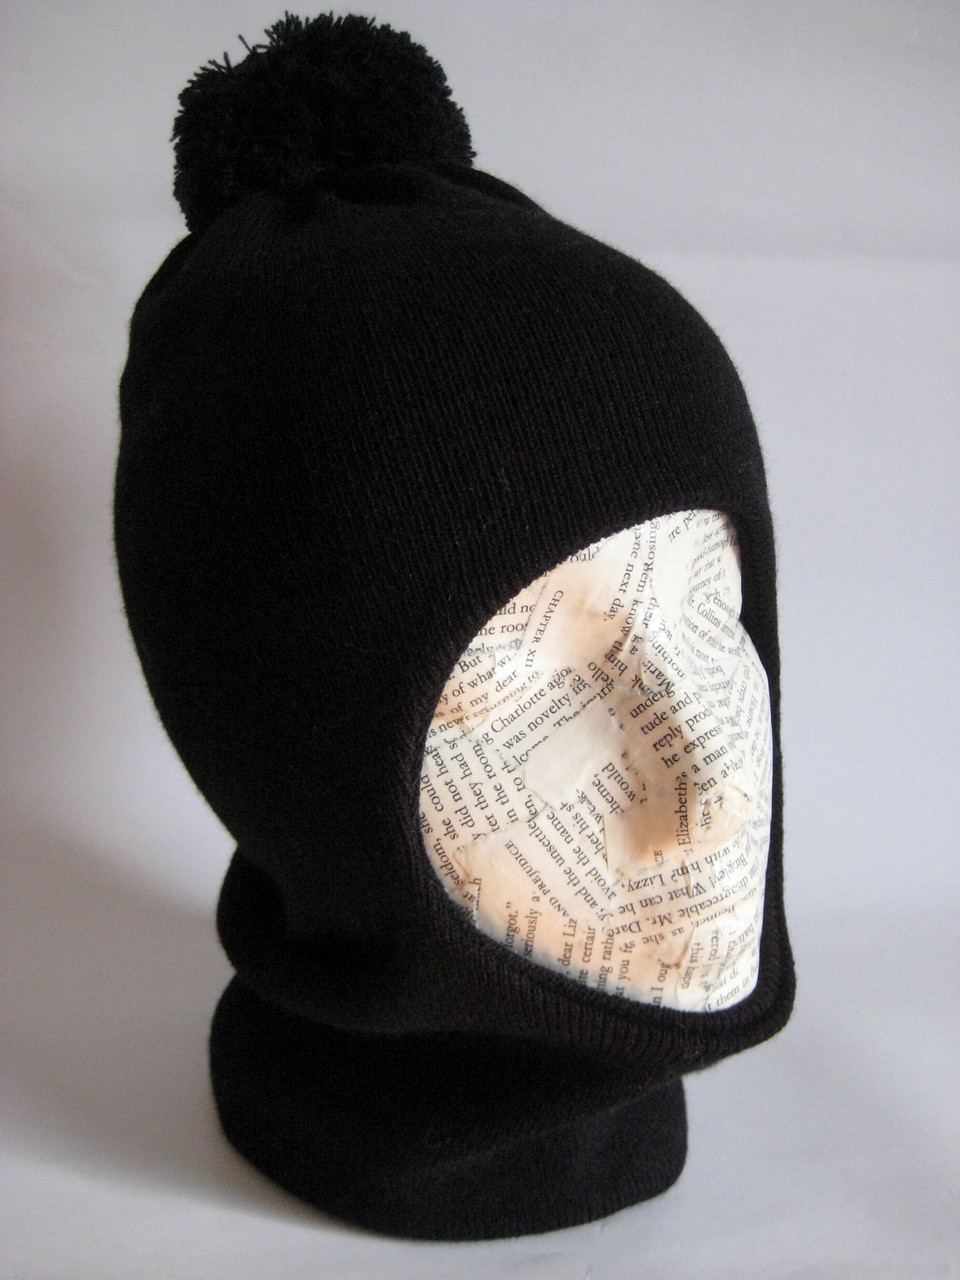 Ski Mask Hat Winter Balaclava Hat Balaclava Hat For Boys Warm Hats